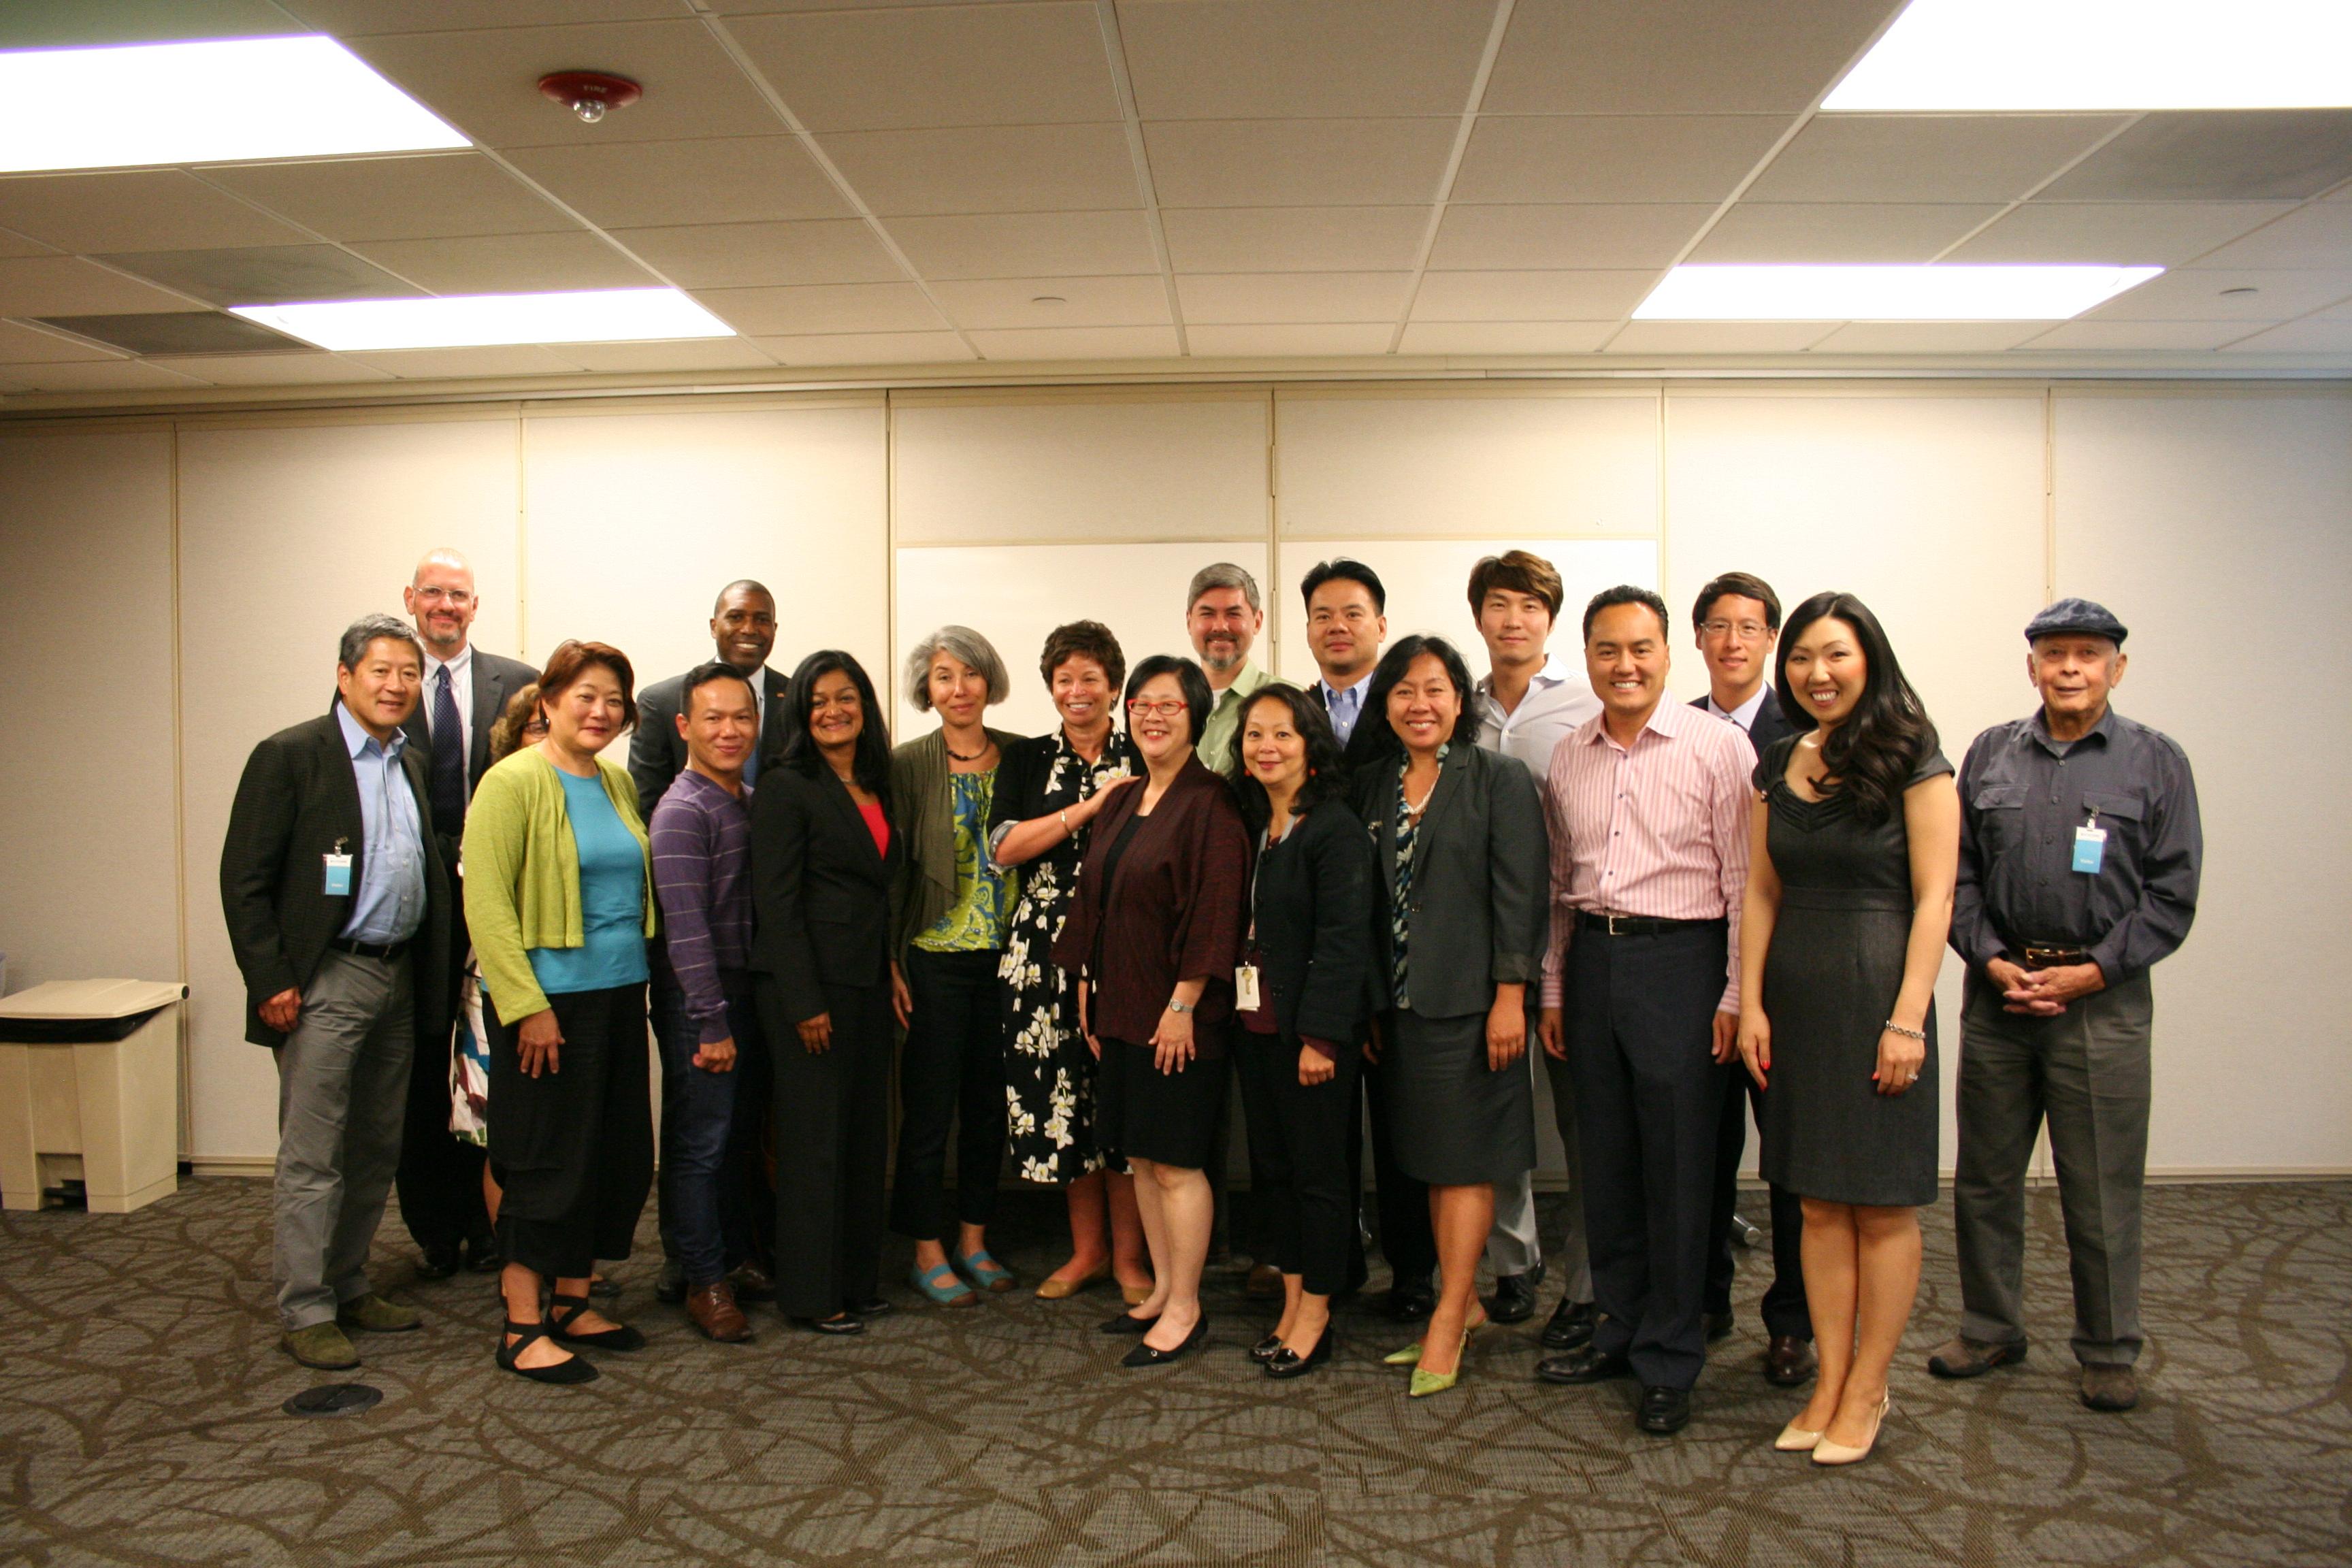 Senior Advisor Valerie Jarrett meets with AAPI community leaders at the International Community Health Services Clinic in Seattle, WA